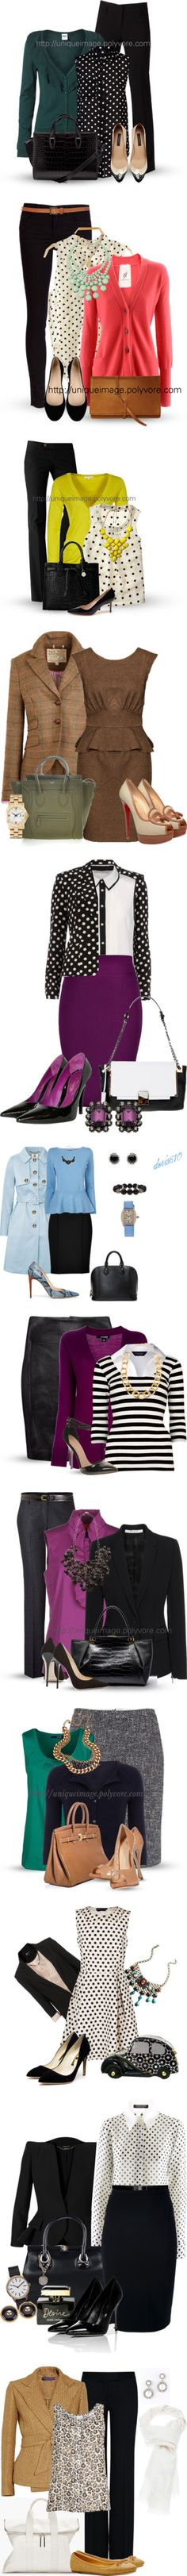 """Outfits par ir a trabajar II"" by guisella-infantes on Polyvore"